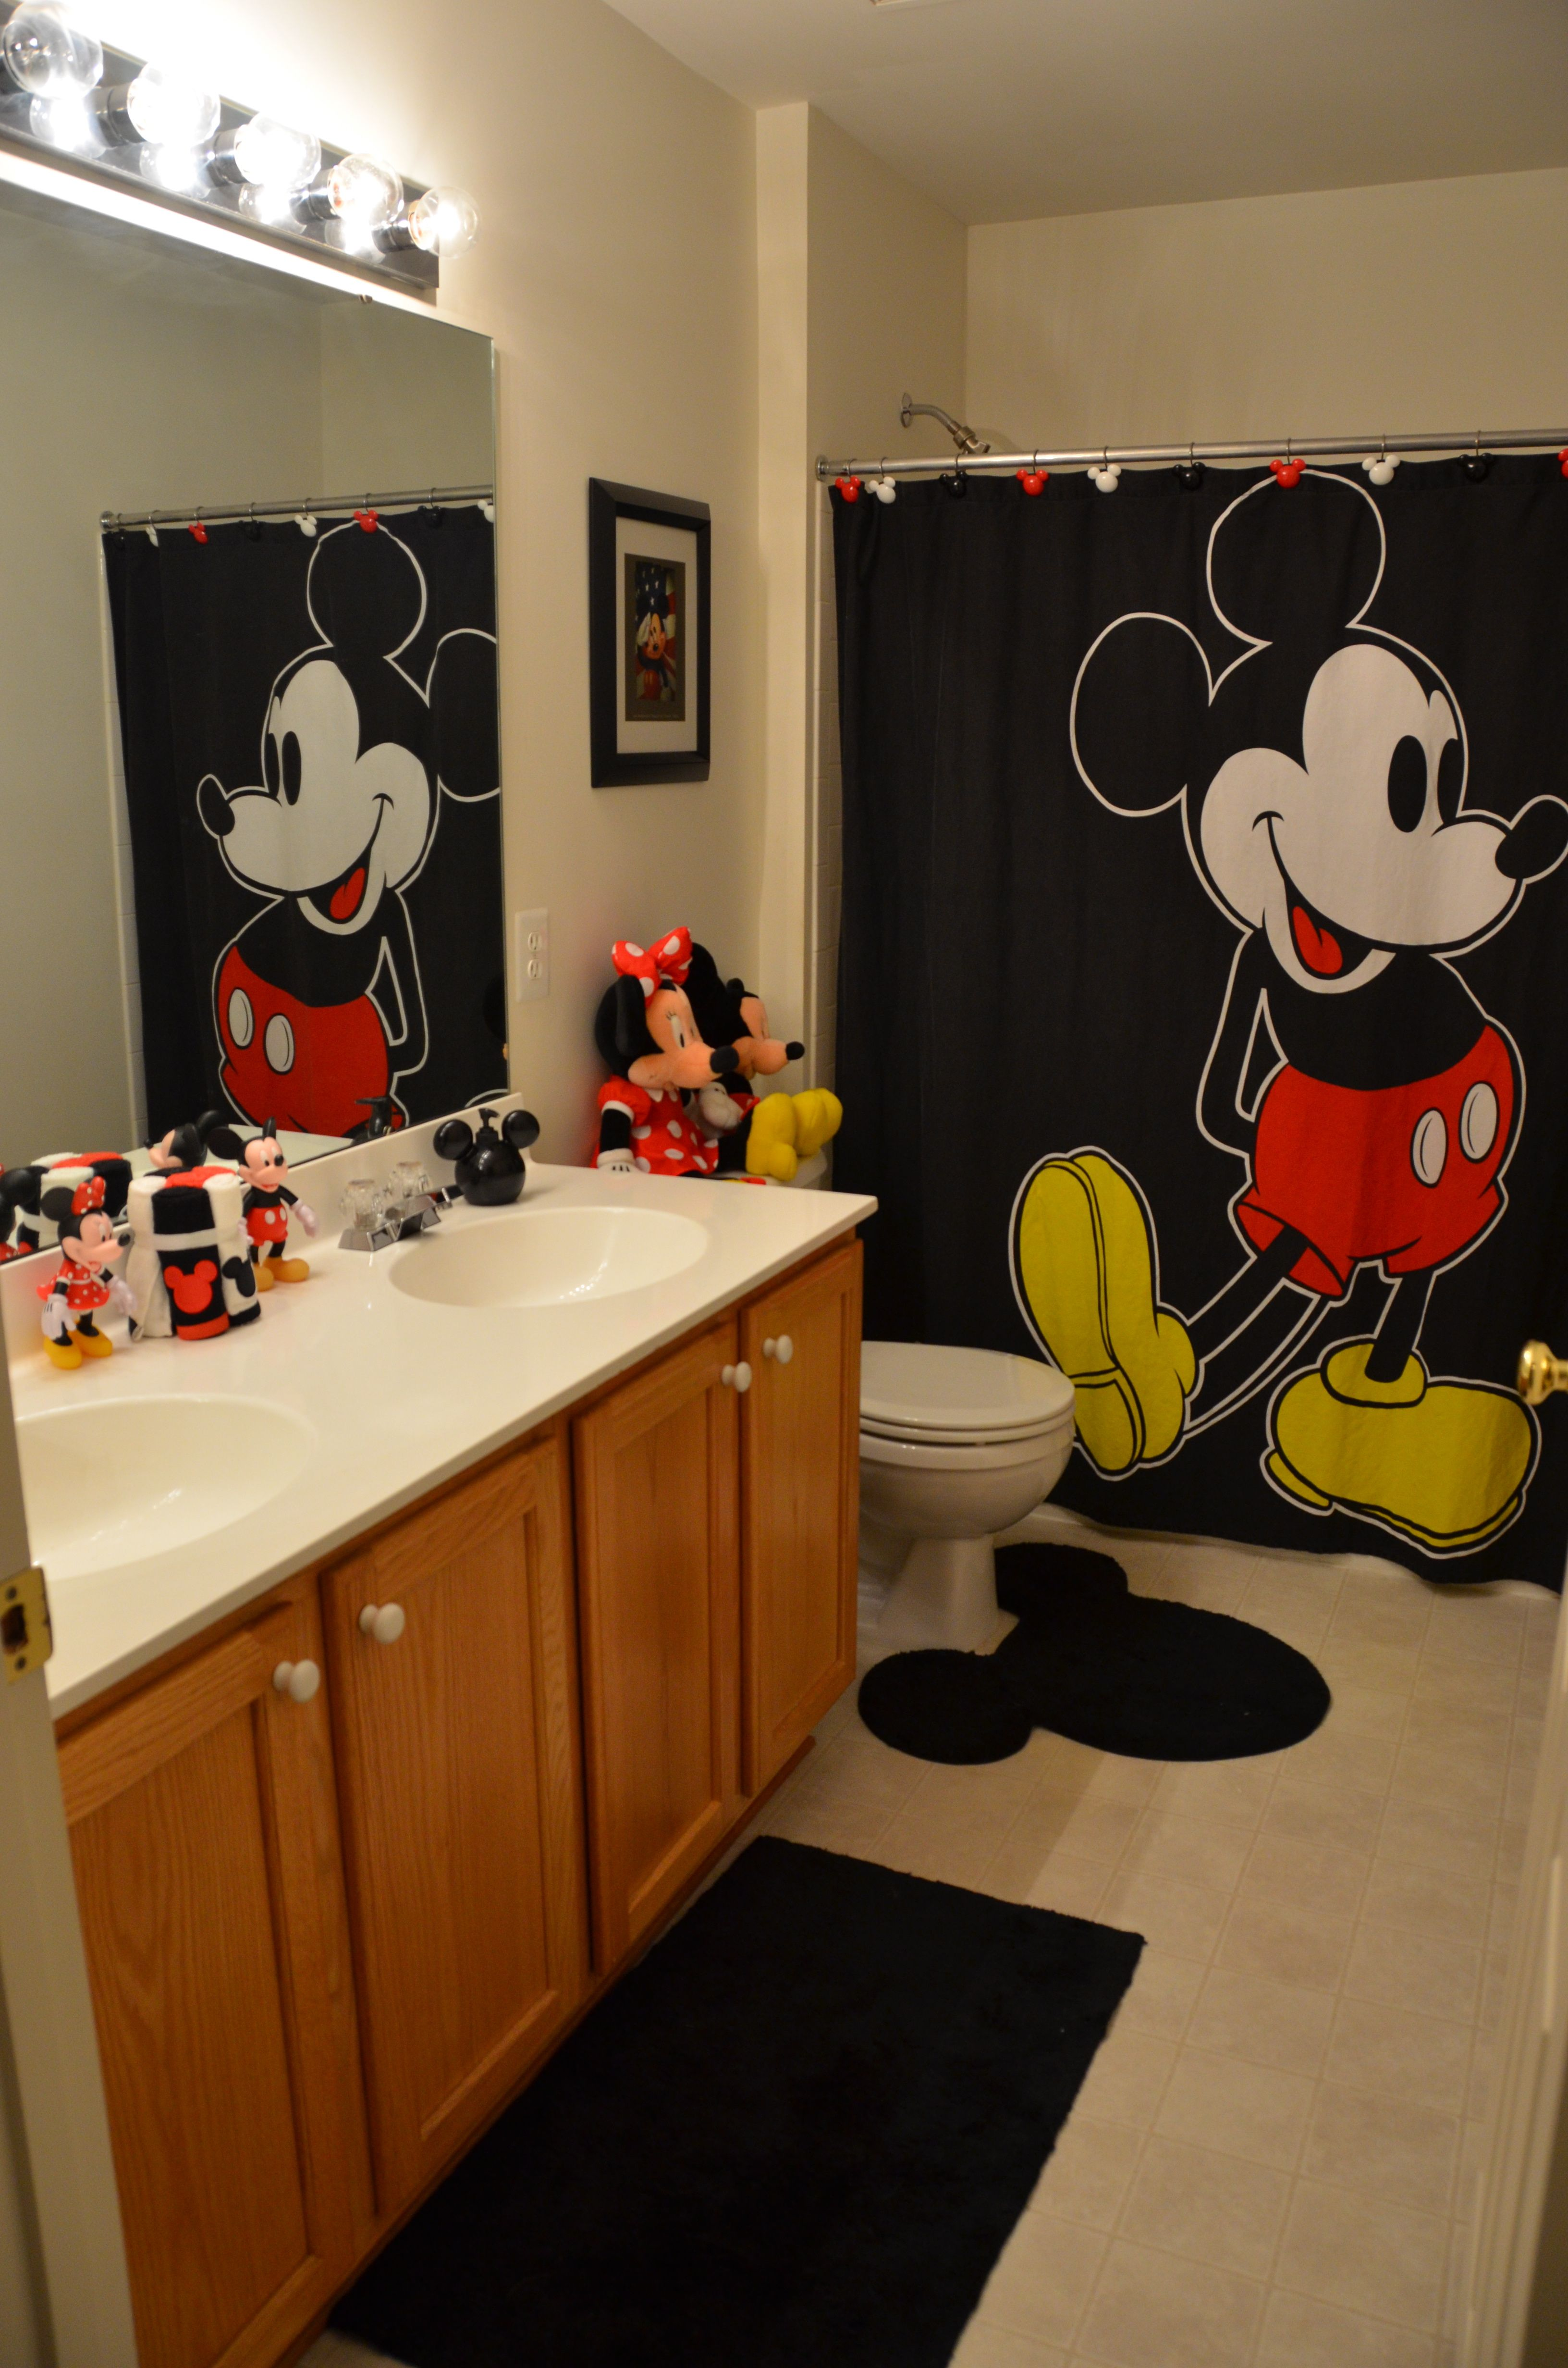 Love The Rug And Curtain May Be A Bad Idea To Have Stuffed Animals In The Bathroom Though Disney Room Decor Mickey Bathroom Disney Home Decor